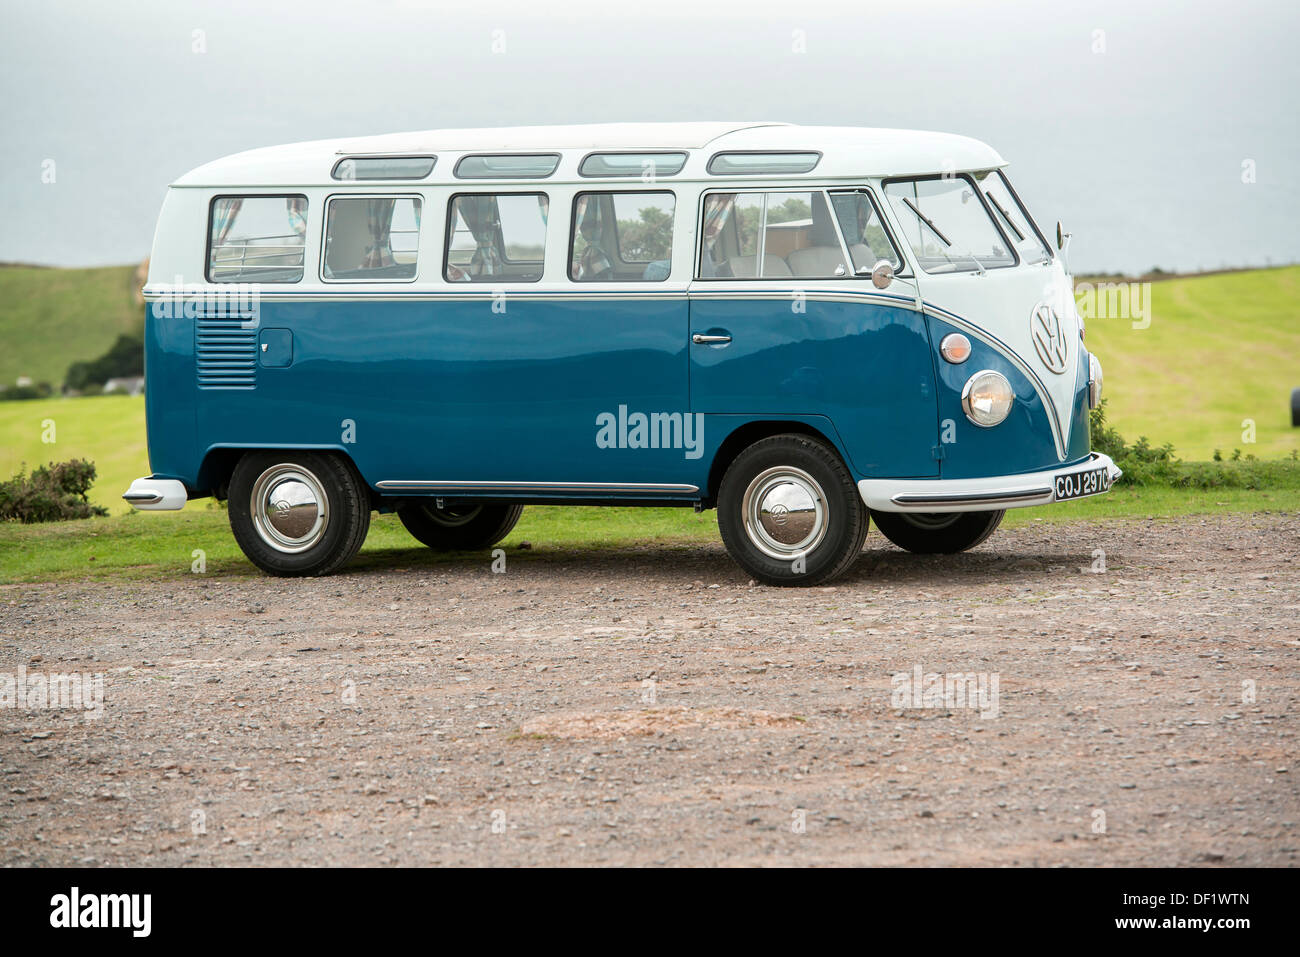 a classic VW 1965 original British RHD 21 window caravette campervan pictured in the countryside, Devon, UK - Stock Image